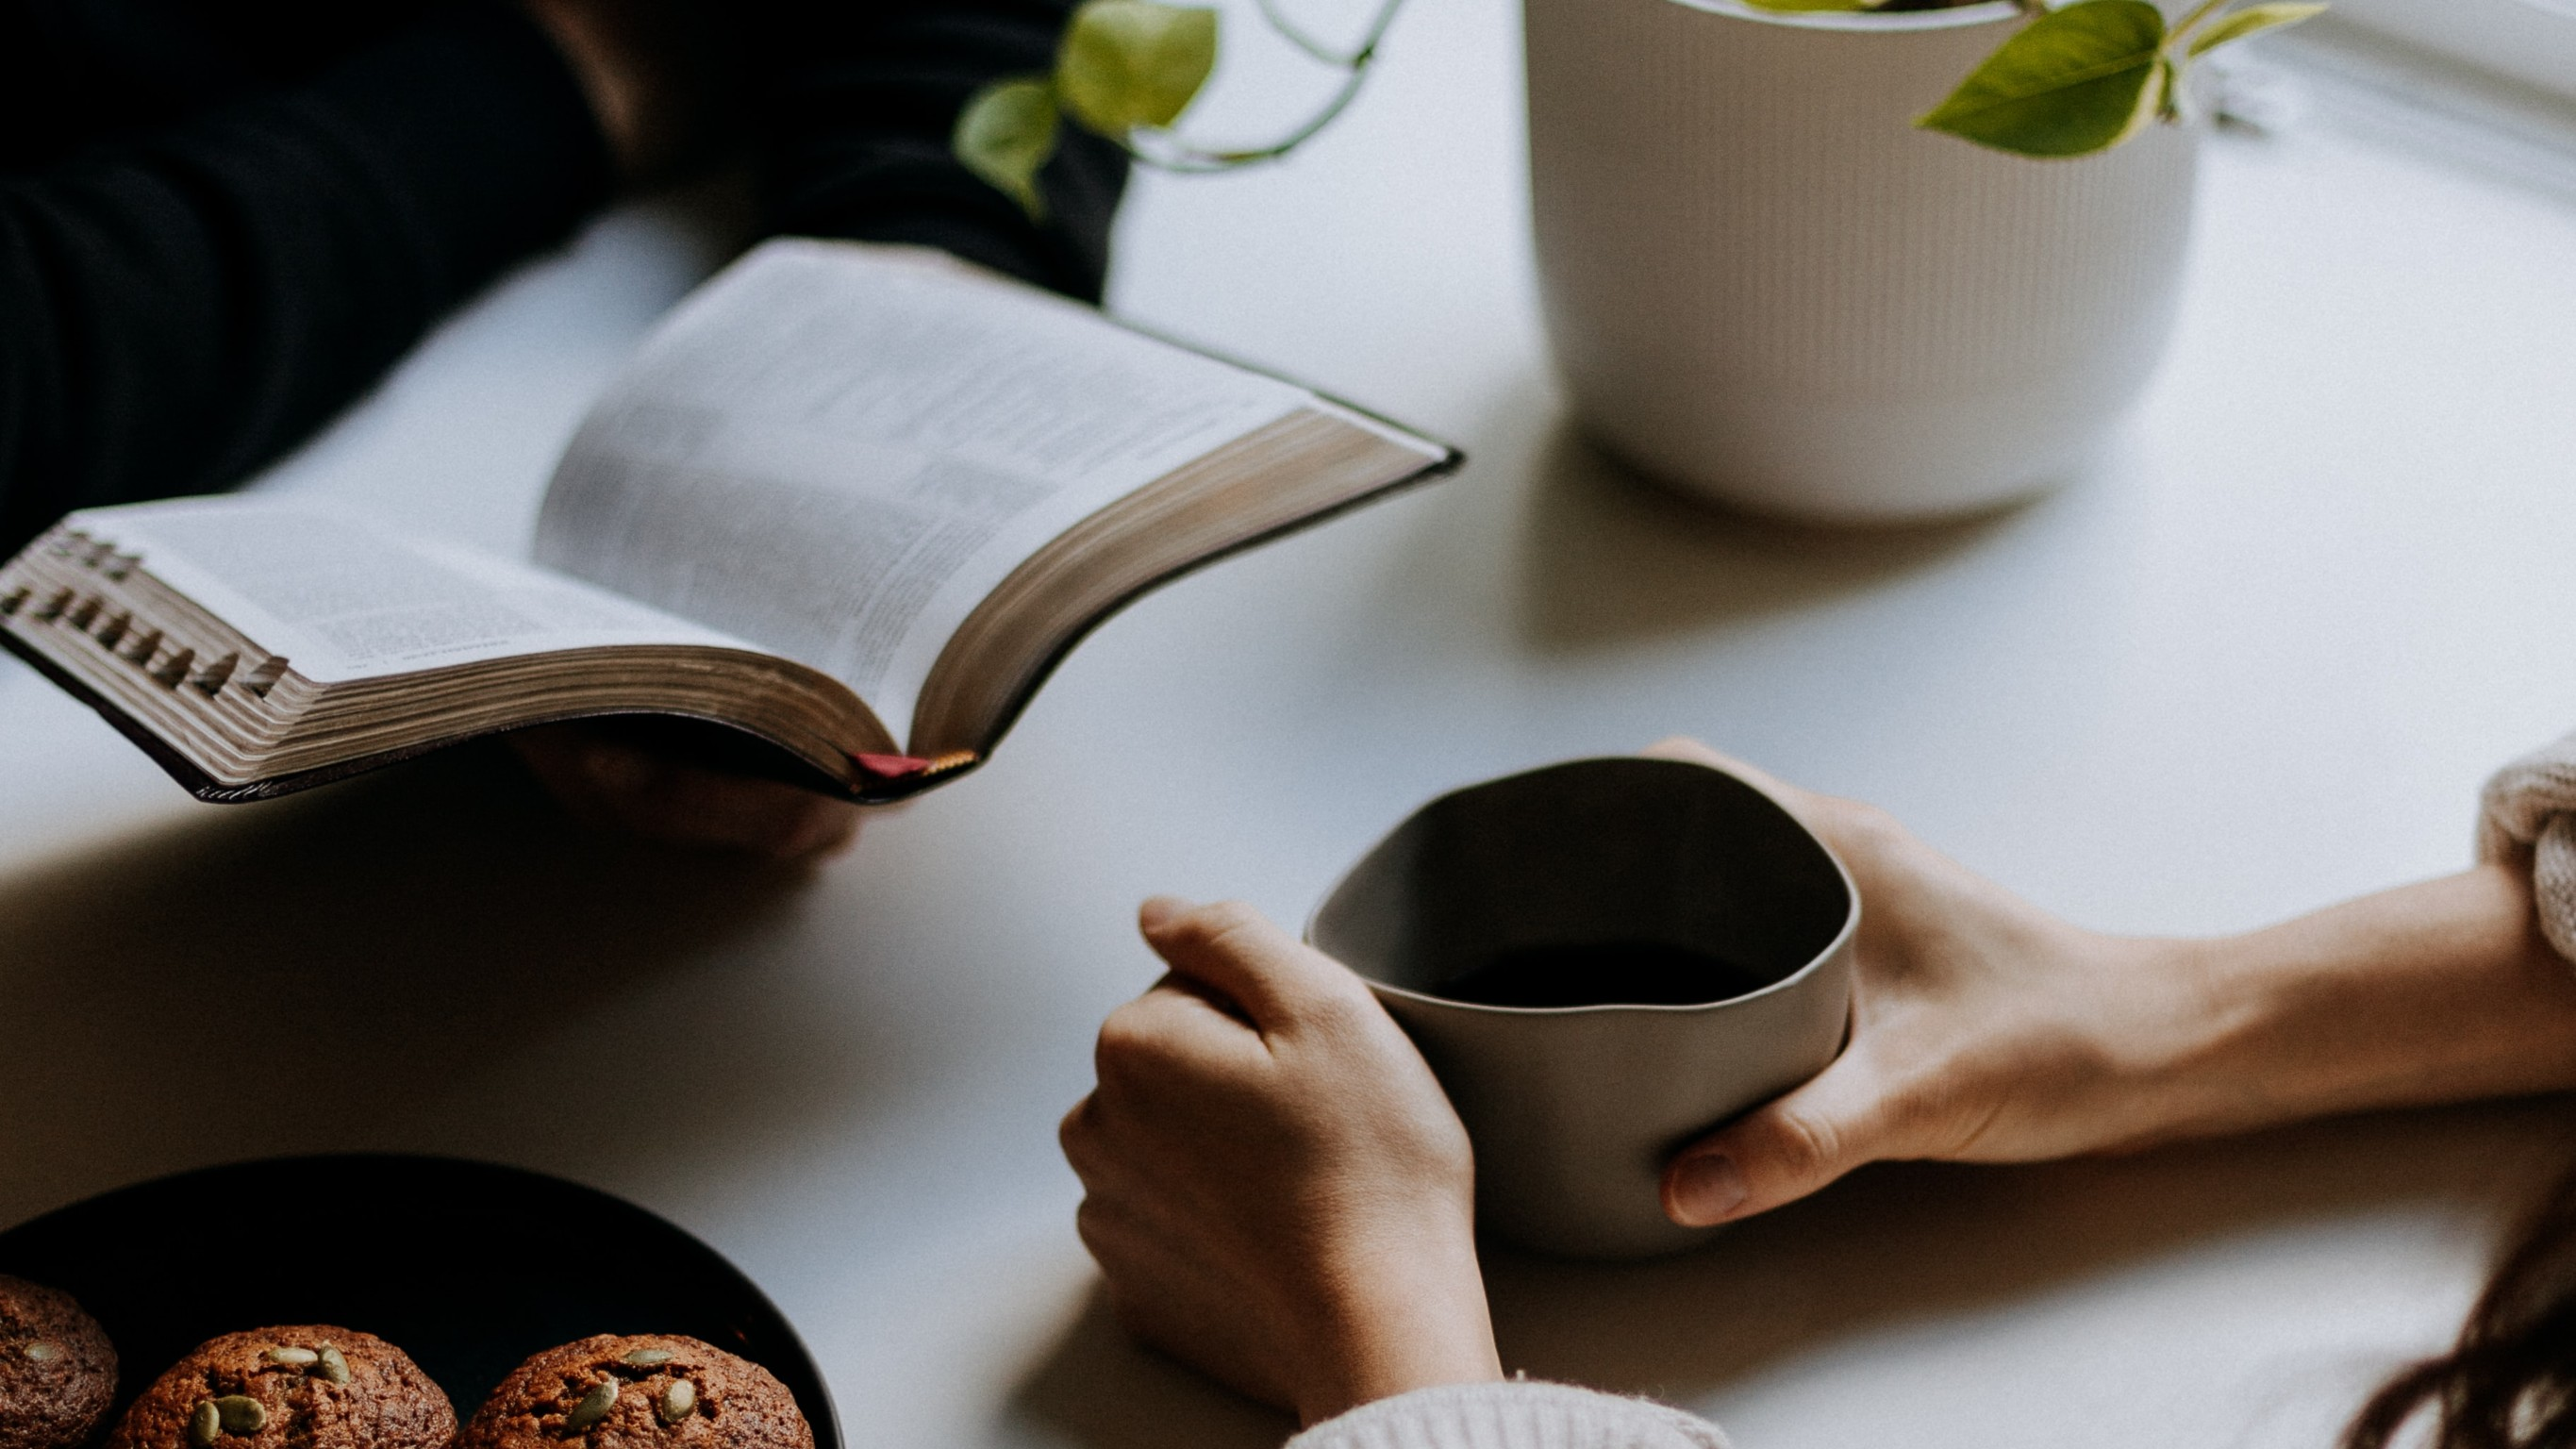 Table with woman's hands holding tea cup and another person holding a religious book.